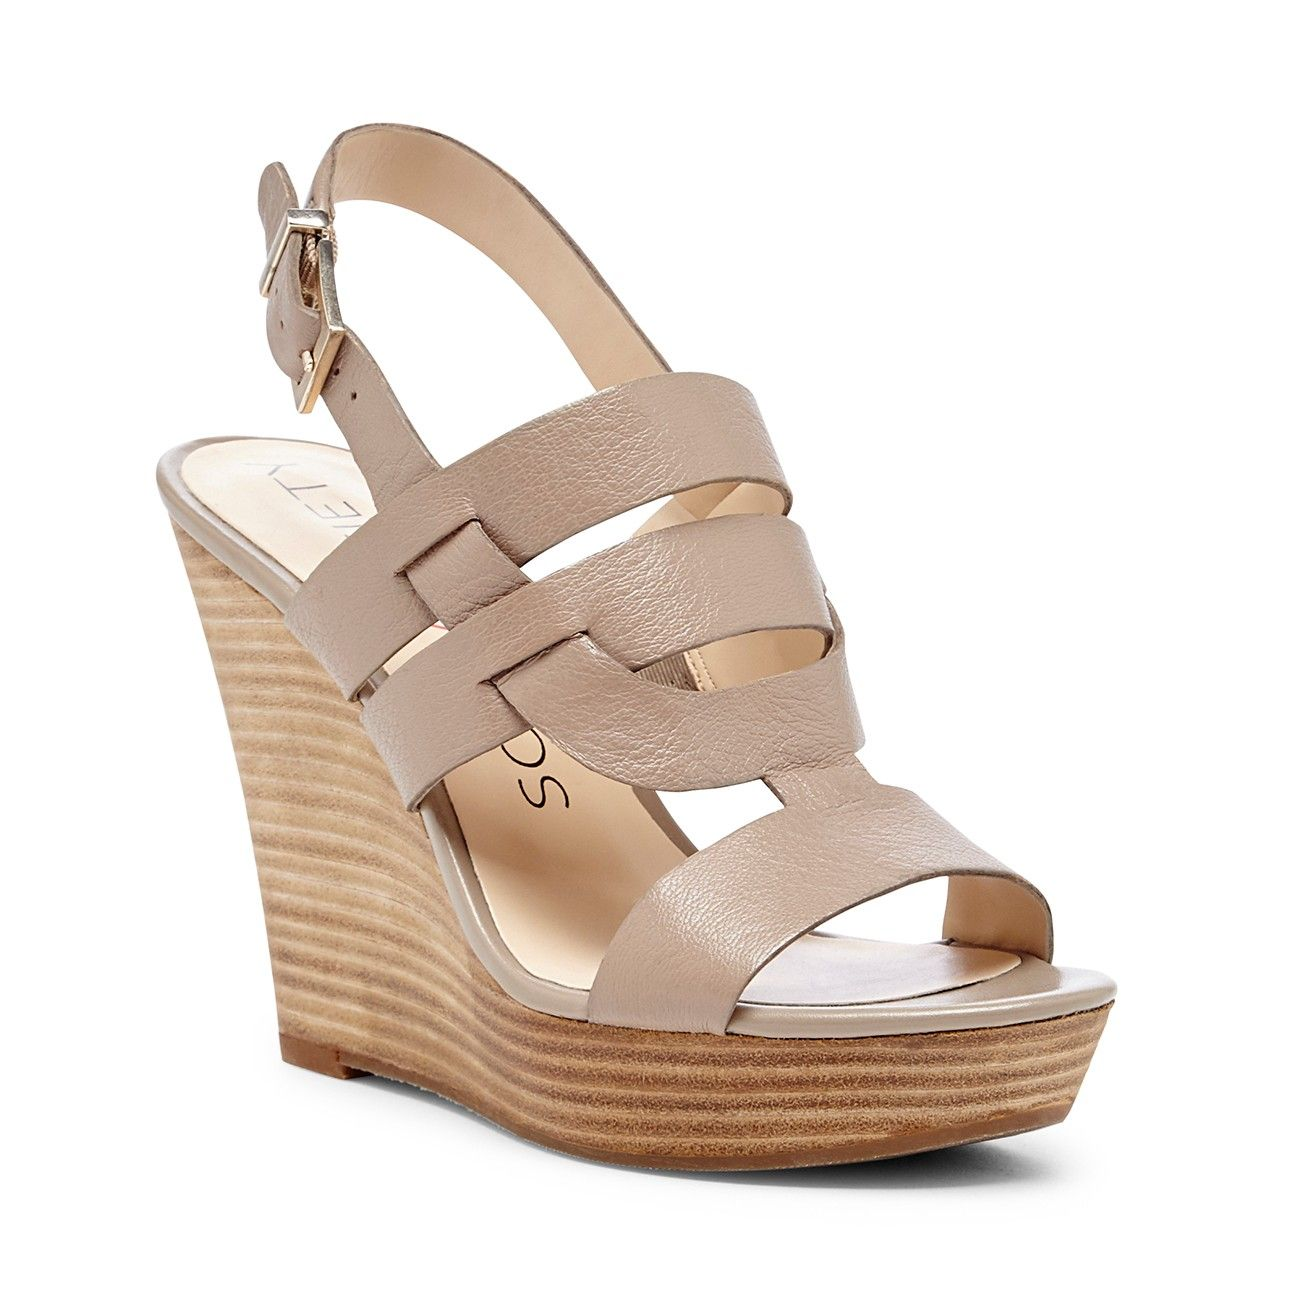 2b7613443c43 Sole Society - Women s Shoes at Surprisingly Affordable Prices